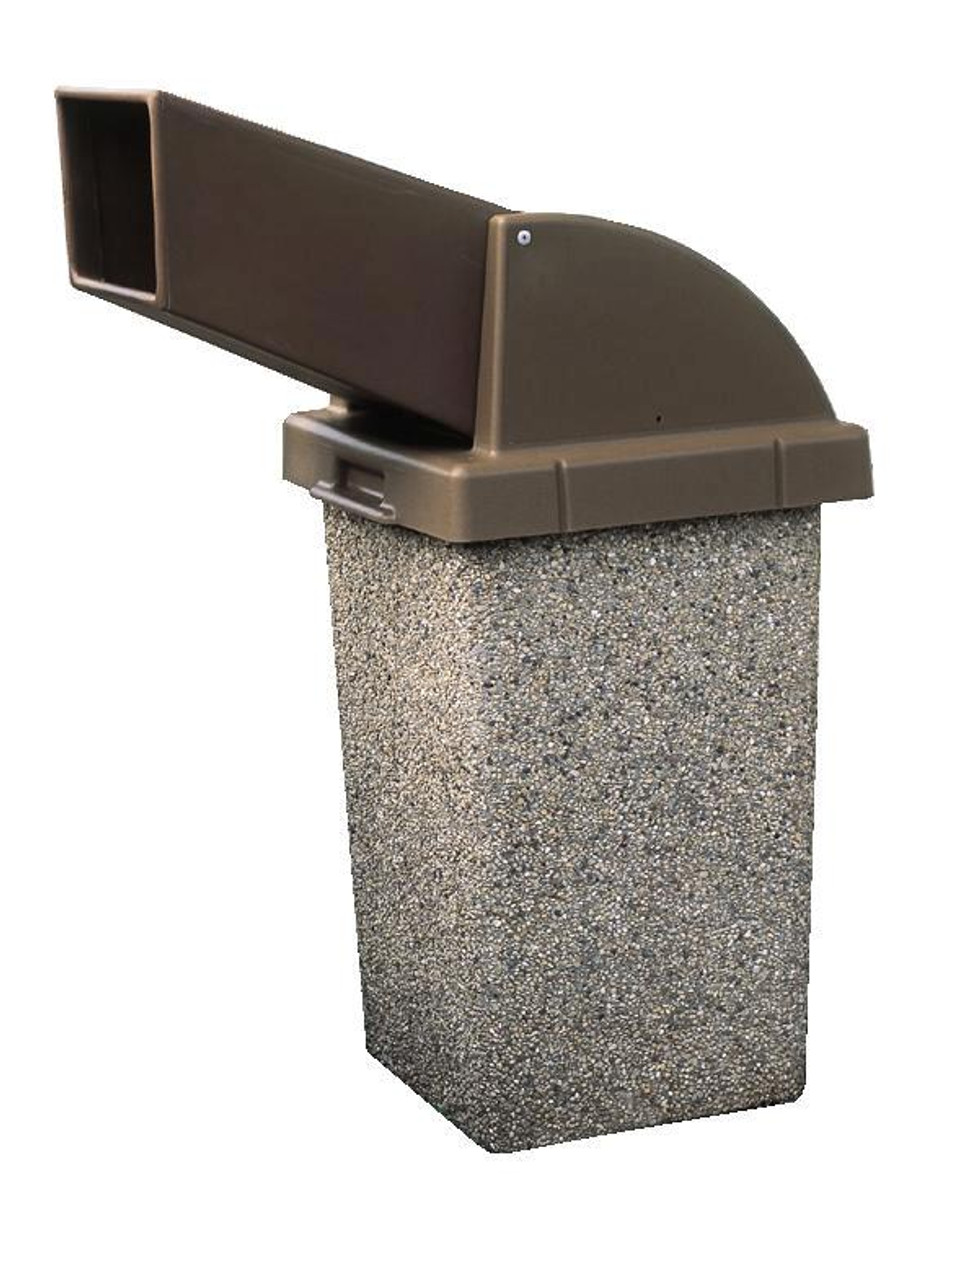 30 Gallon Concrete Drive Up Chute Lid Outdoor Waste Container TF1021 Exposed Aggregate